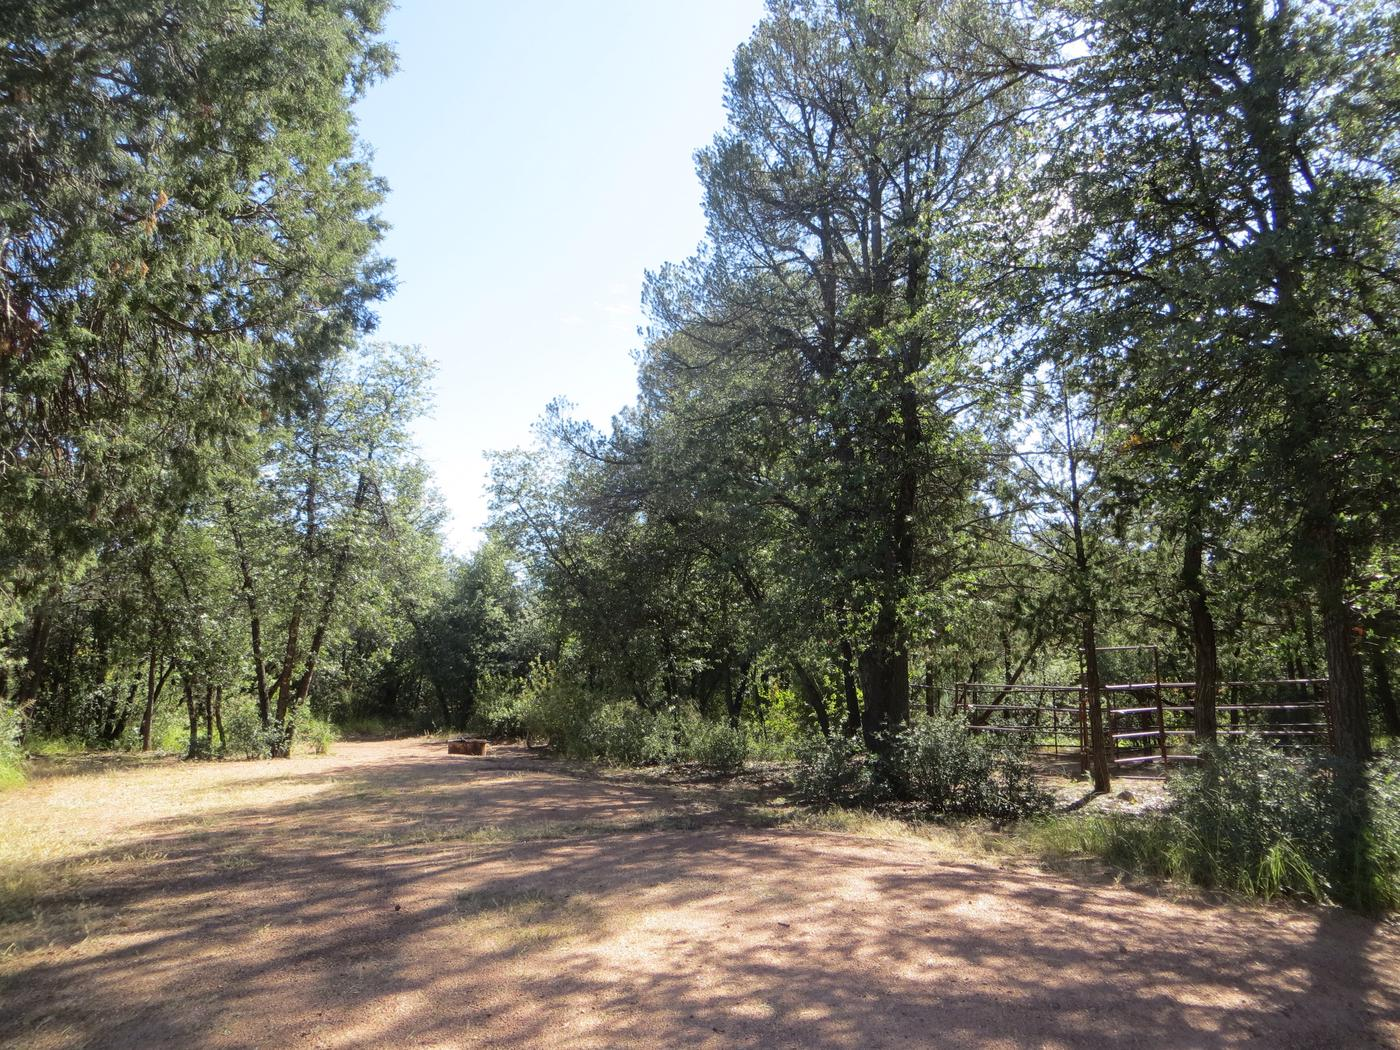 Houston Mesa, Horse Camp site #17 featuring entrance and parking, fire pit and horse corral.